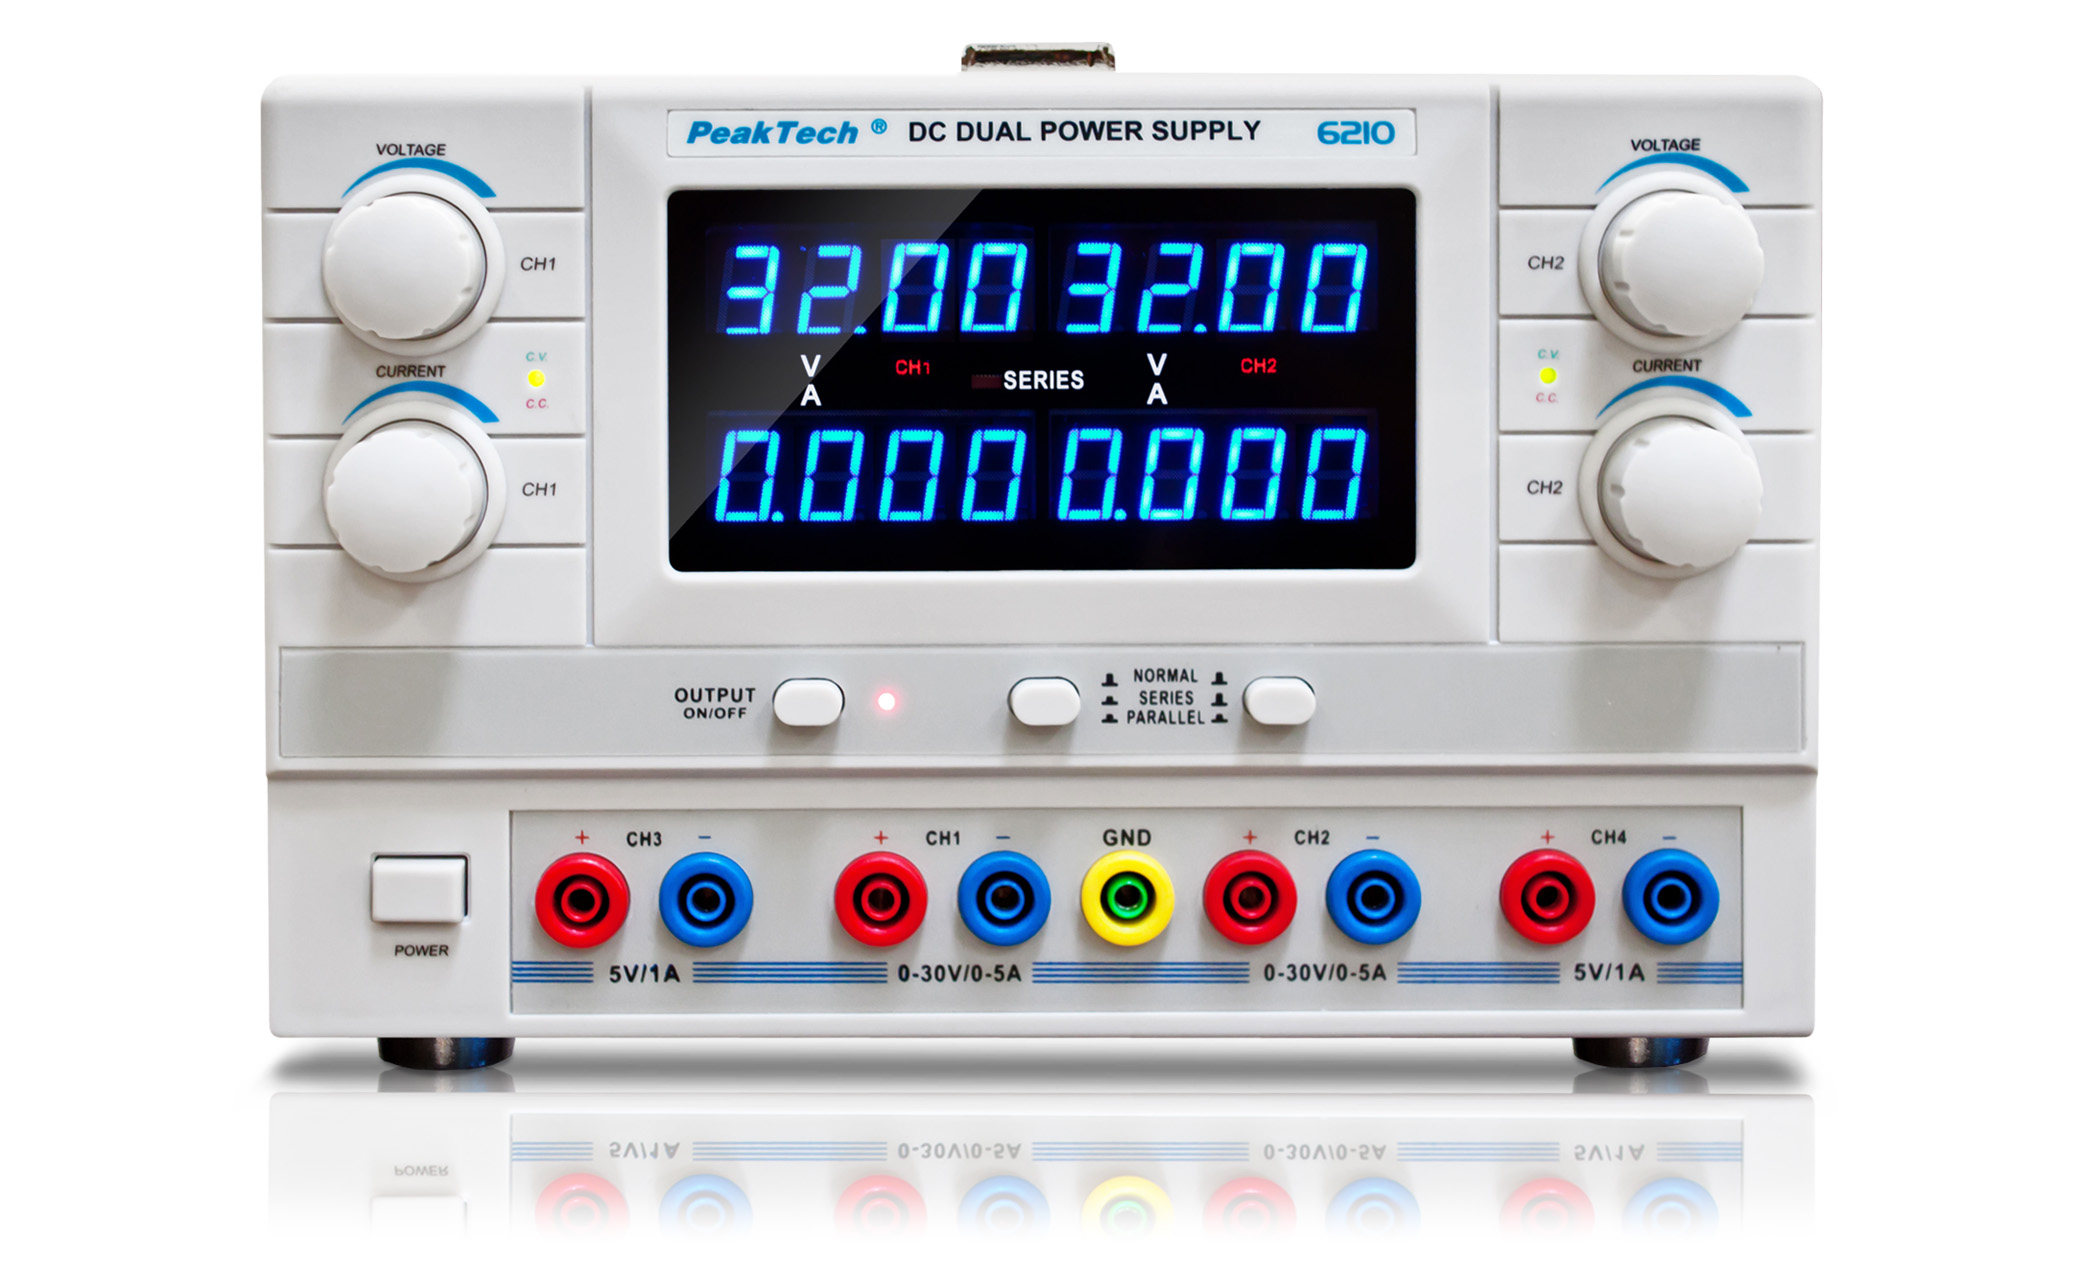 «PeakTech® P 6210» Digital Power Supply with 4 voltage outputs